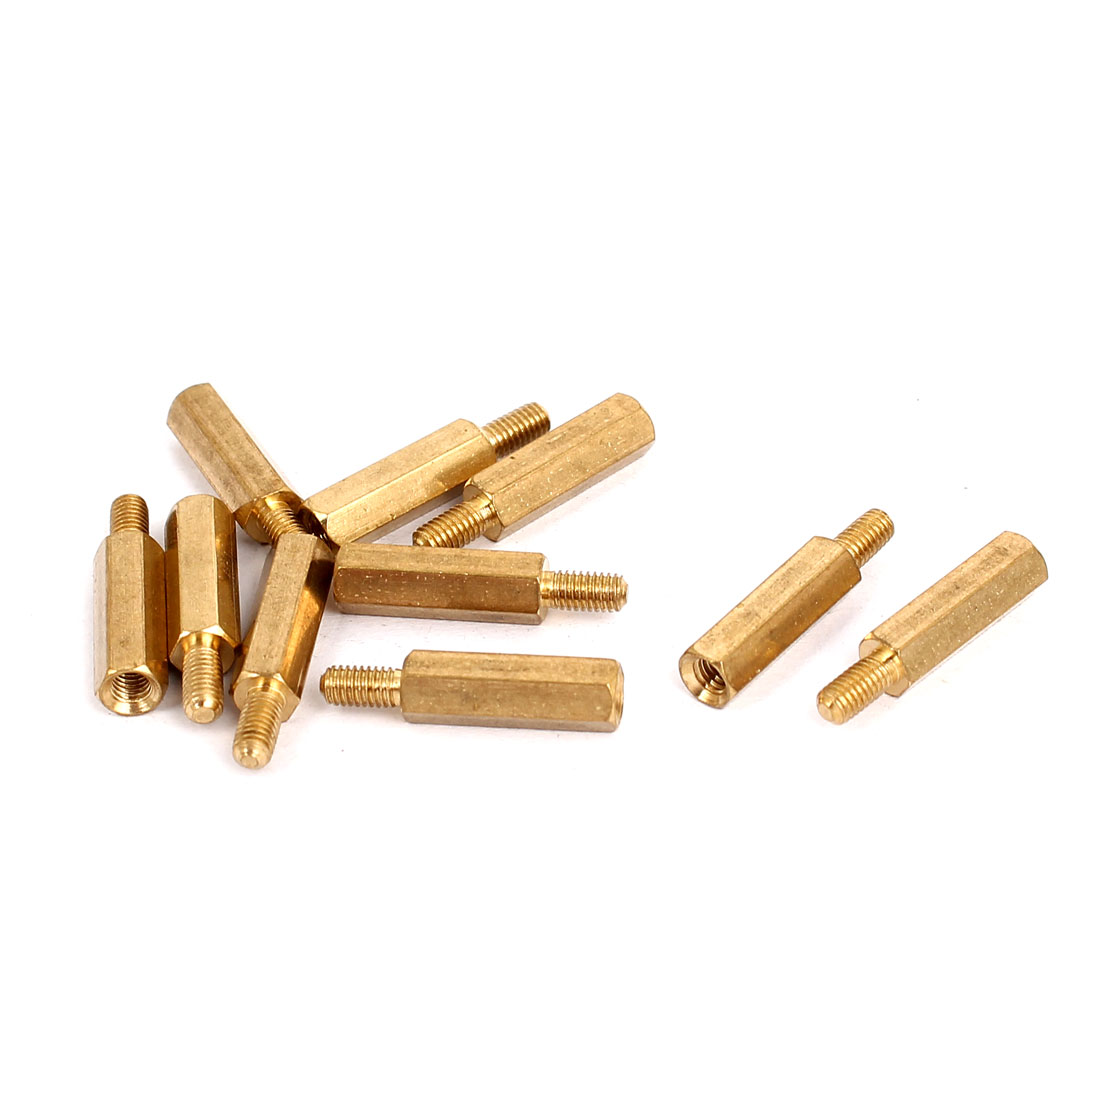 M3 Female x Male Brass Hexagonal Pillar Standoff Spacer Screws Bolt 15+6mm 10pcs